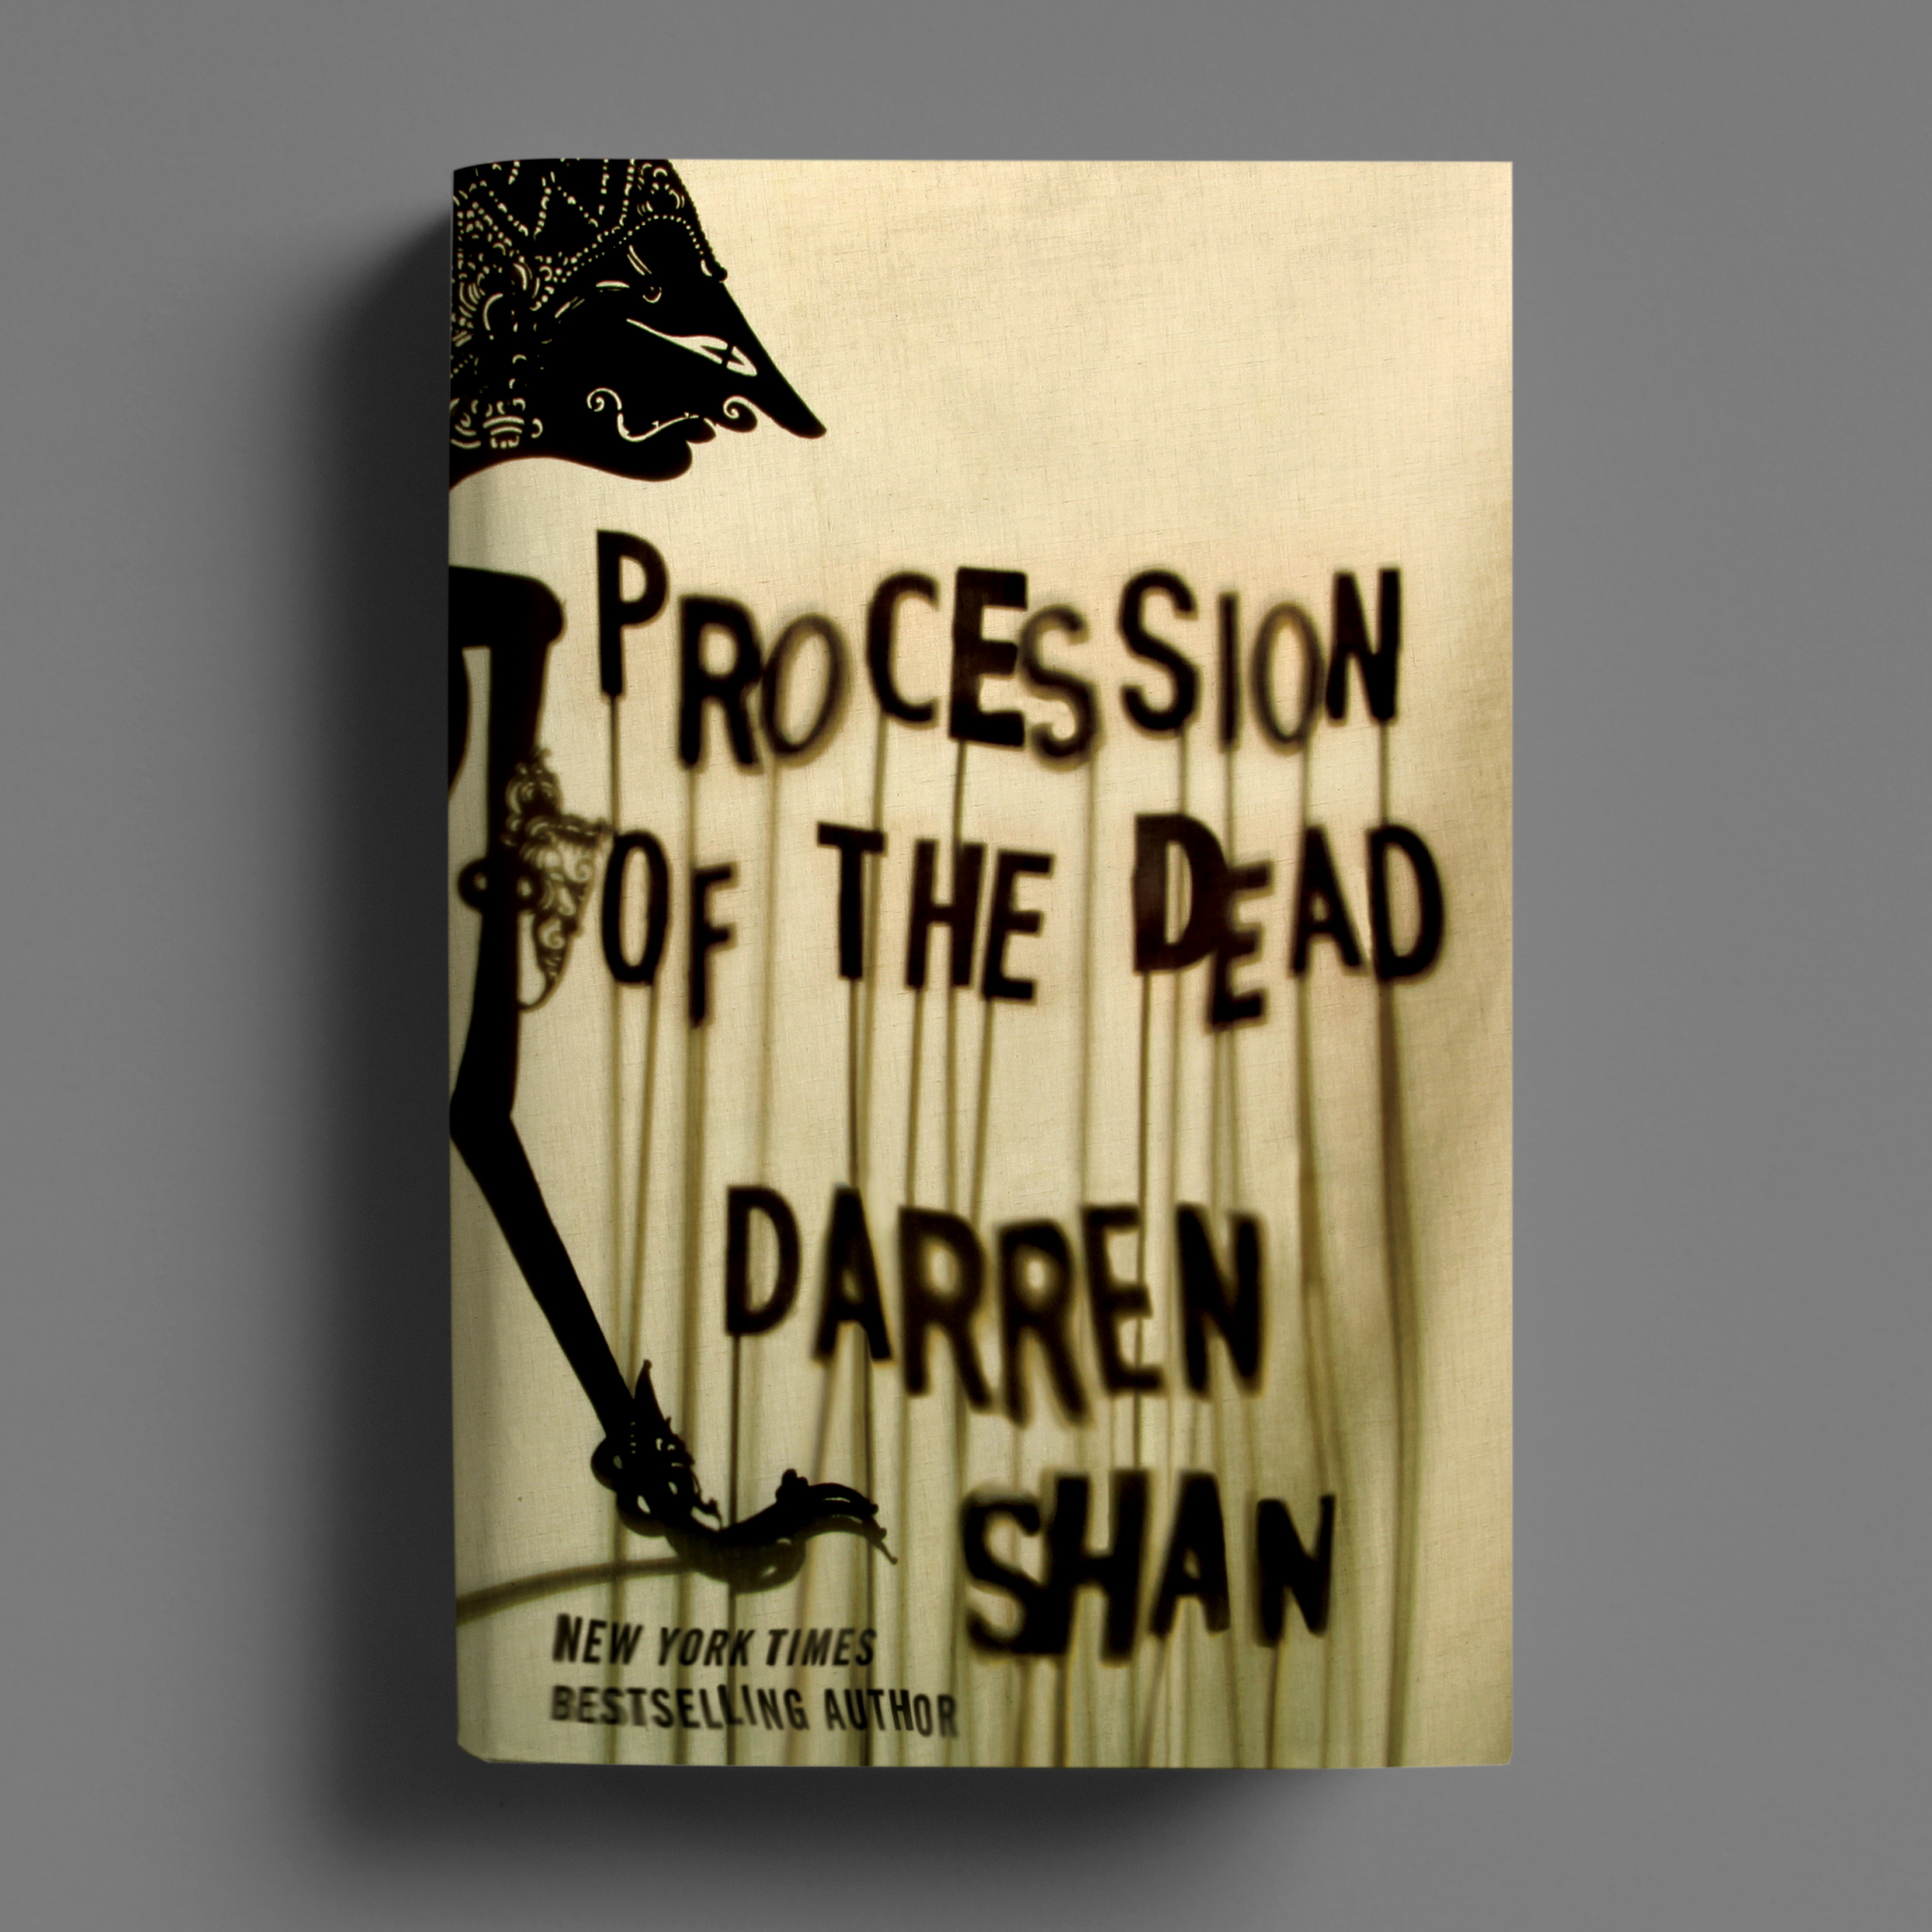 Faceout Books interview: Procession of the Dead